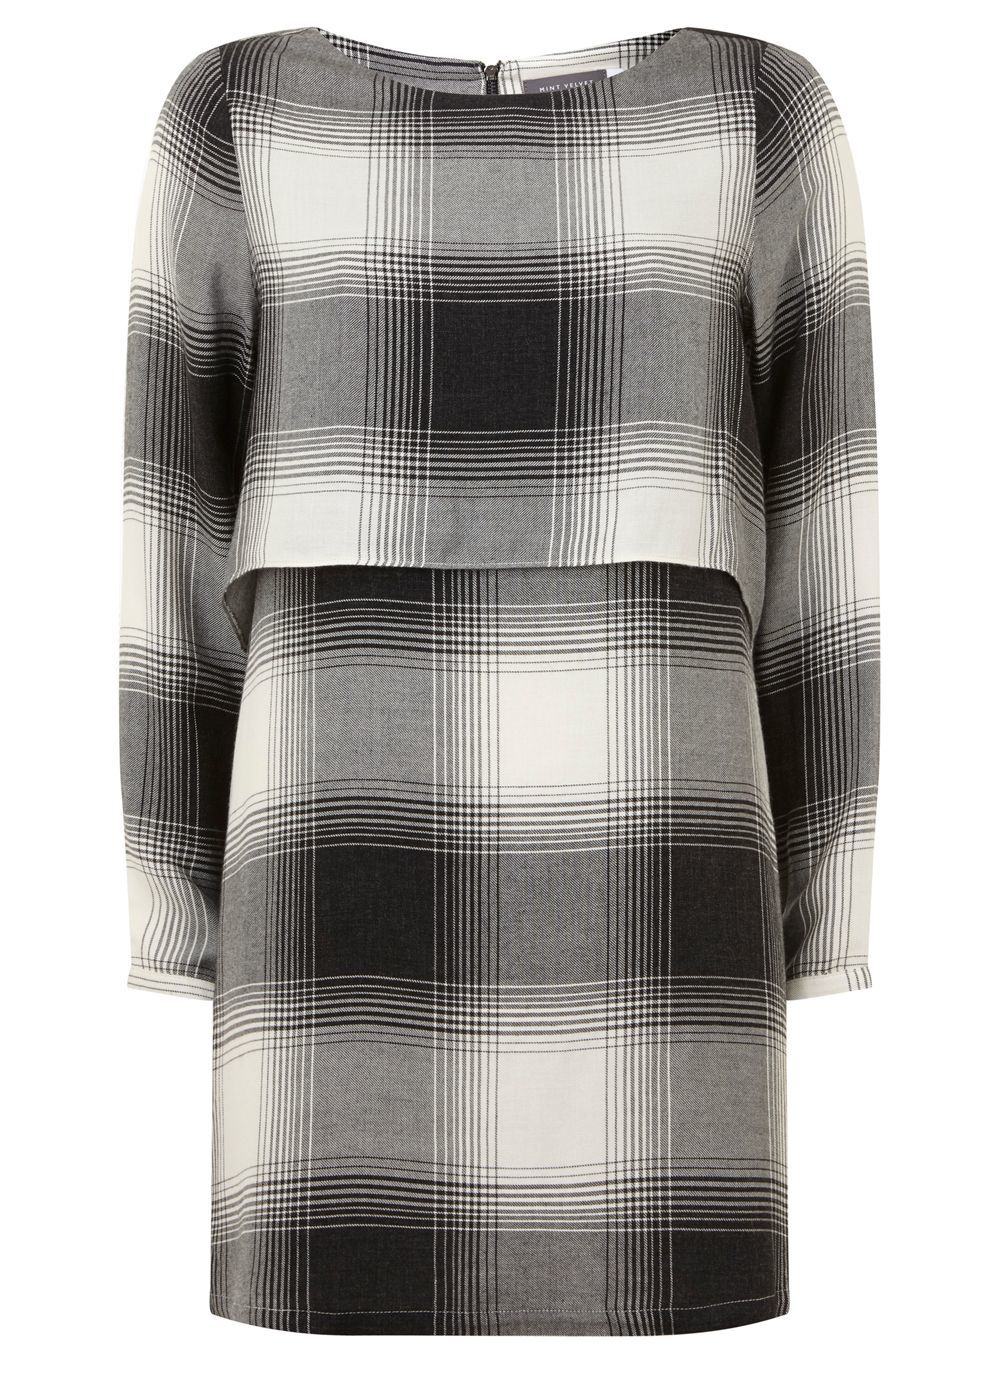 Fine Check Layer Dress, Multi Coloured - style: shift; length: mid thigh; fit: loose; pattern: checked/gingham; bust detail: subtle bust detail; secondary colour: white; predominant colour: black; occasions: evening; neckline: crew; sleeve length: long sleeve; sleeve style: standard; pattern type: fabric; texture group: woven light midweight; fibres: viscose/rayon - mix; multicoloured: multicoloured; season: a/w 2016; wardrobe: event